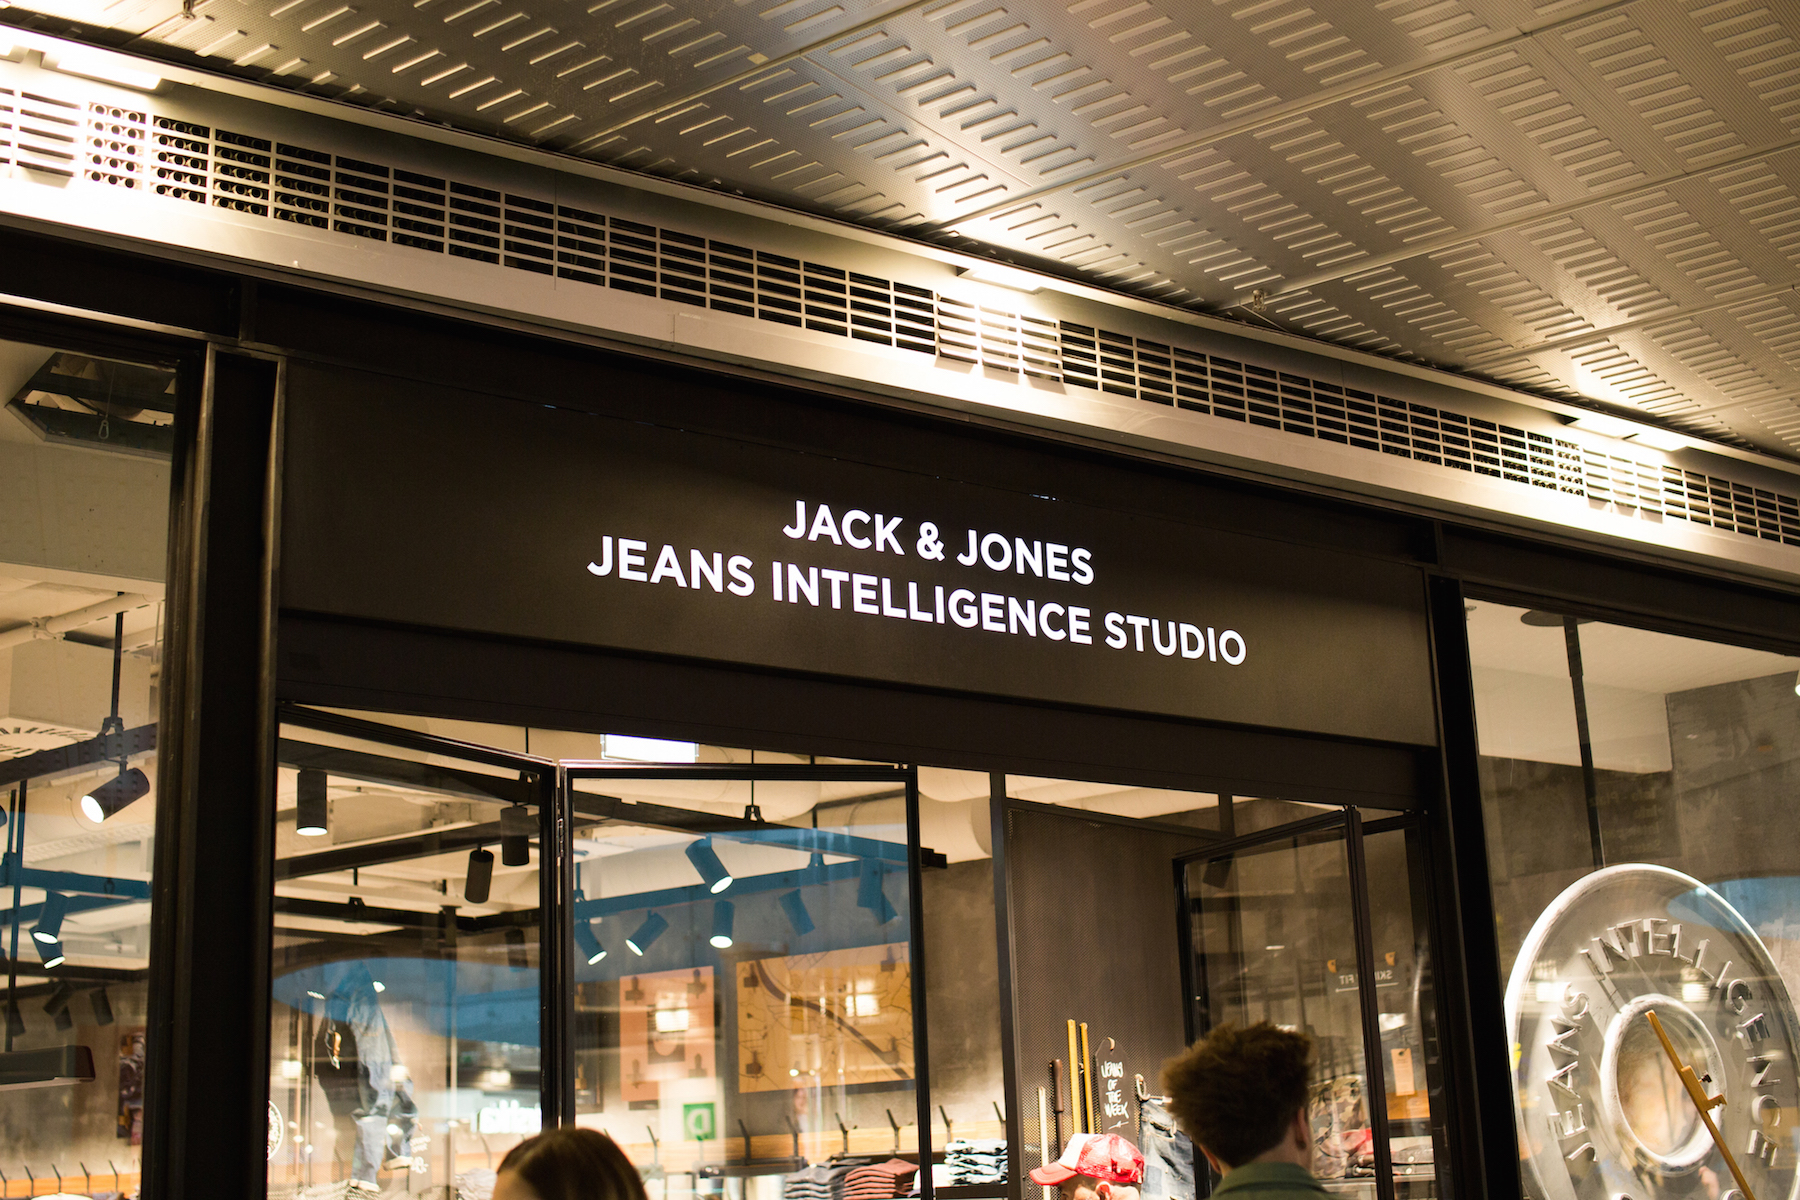 jack-and-jones-jeans-intelligence-studio-salzburg-opening_meanwhile-in-awesometown_austrian-mens-fashion-and-lifestyleblog1